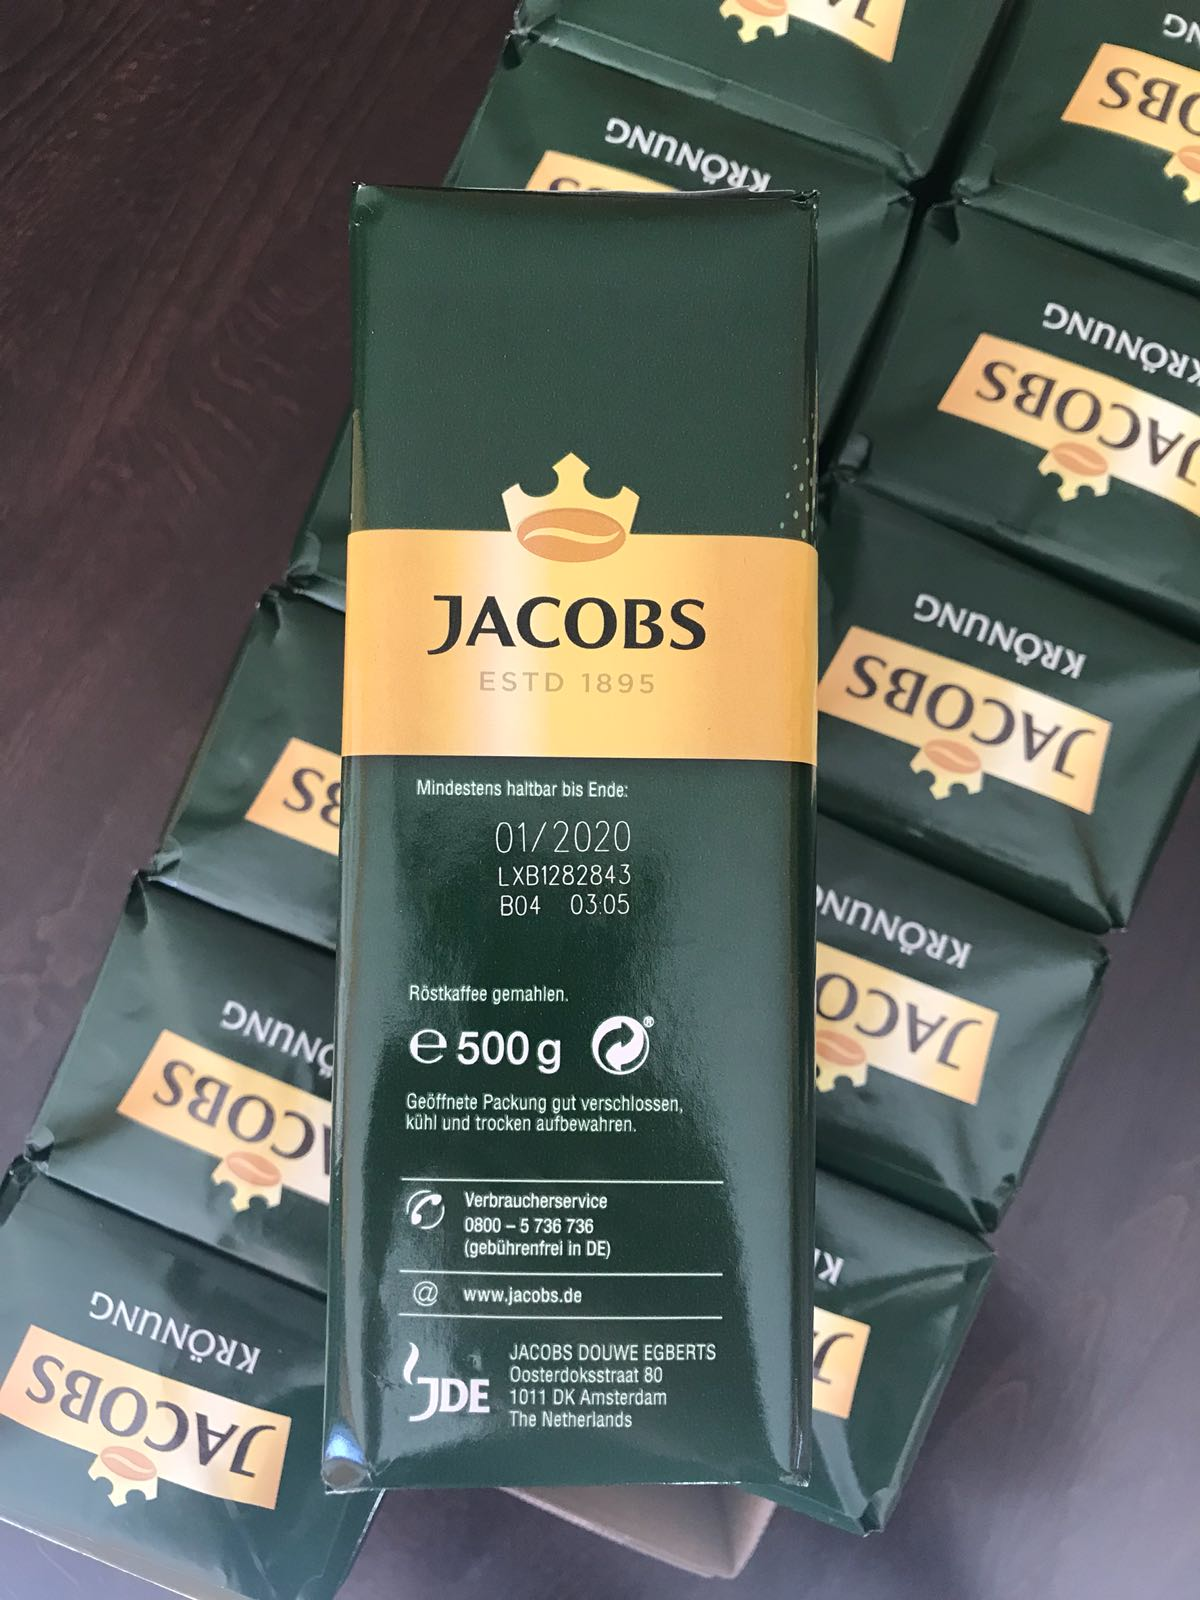 29951 - Jacobs Kronung 500 g Europe